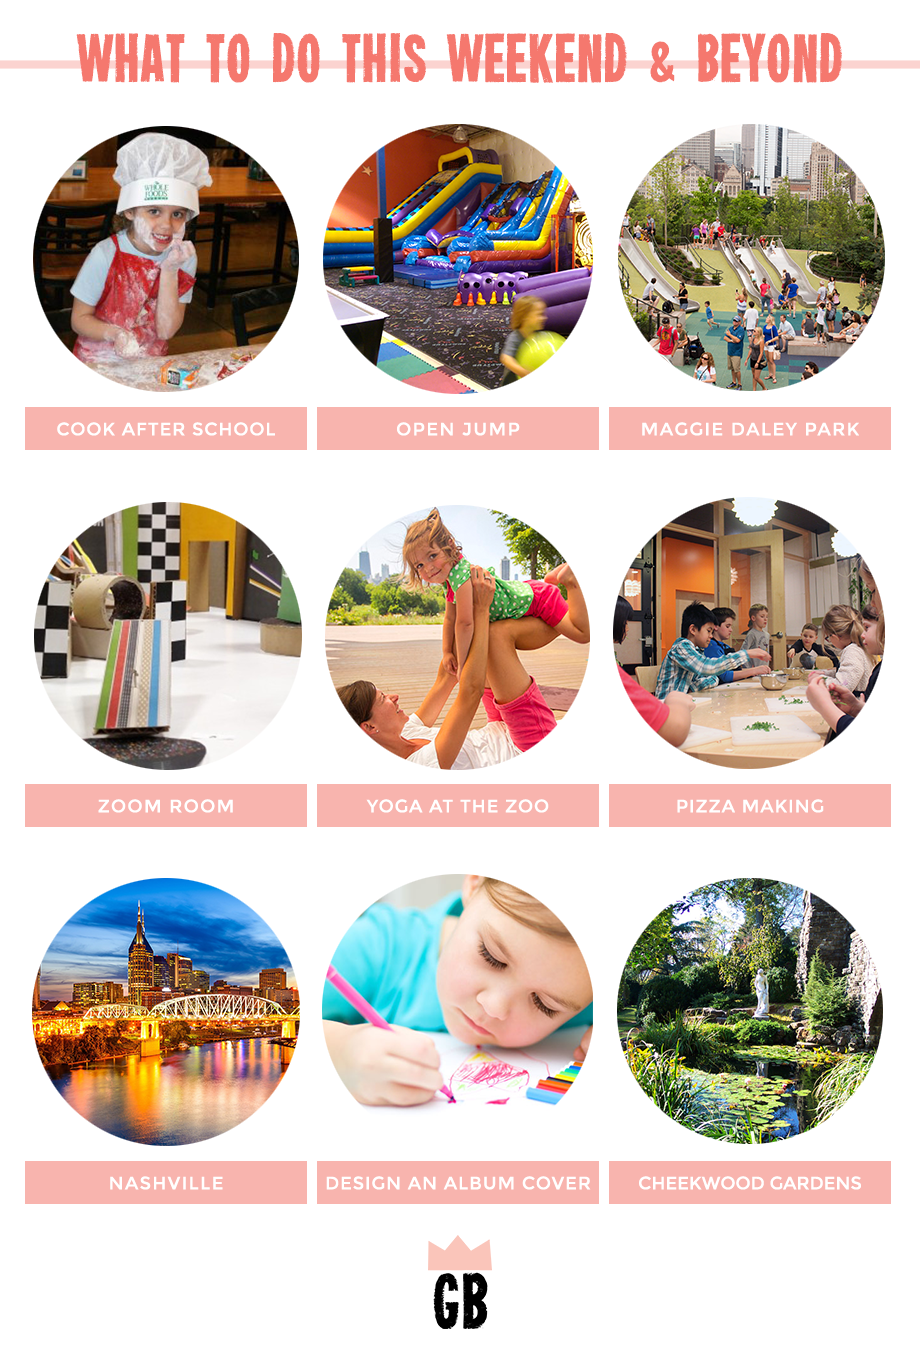 This is a post by Glitter and Bubbles that shows parents what activities they can do with their children throughout Chicago and Nashville.